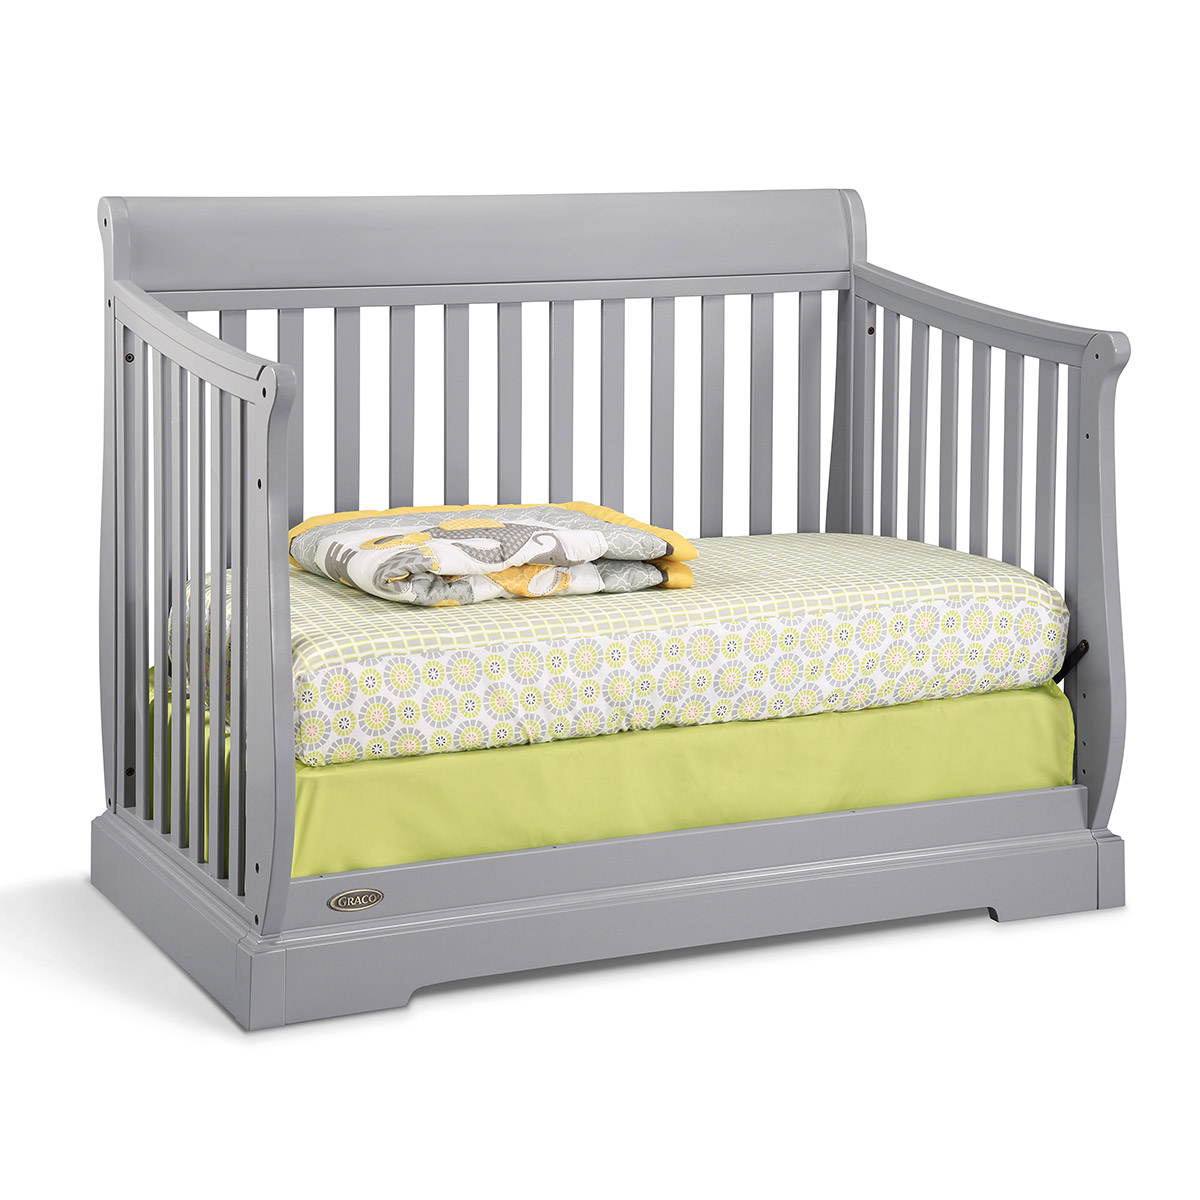 Crib toys for sale philippines - Graco Cribs Maple Ridge 4 In 1 Convertible Crib In Pebble Gray Free Shipping